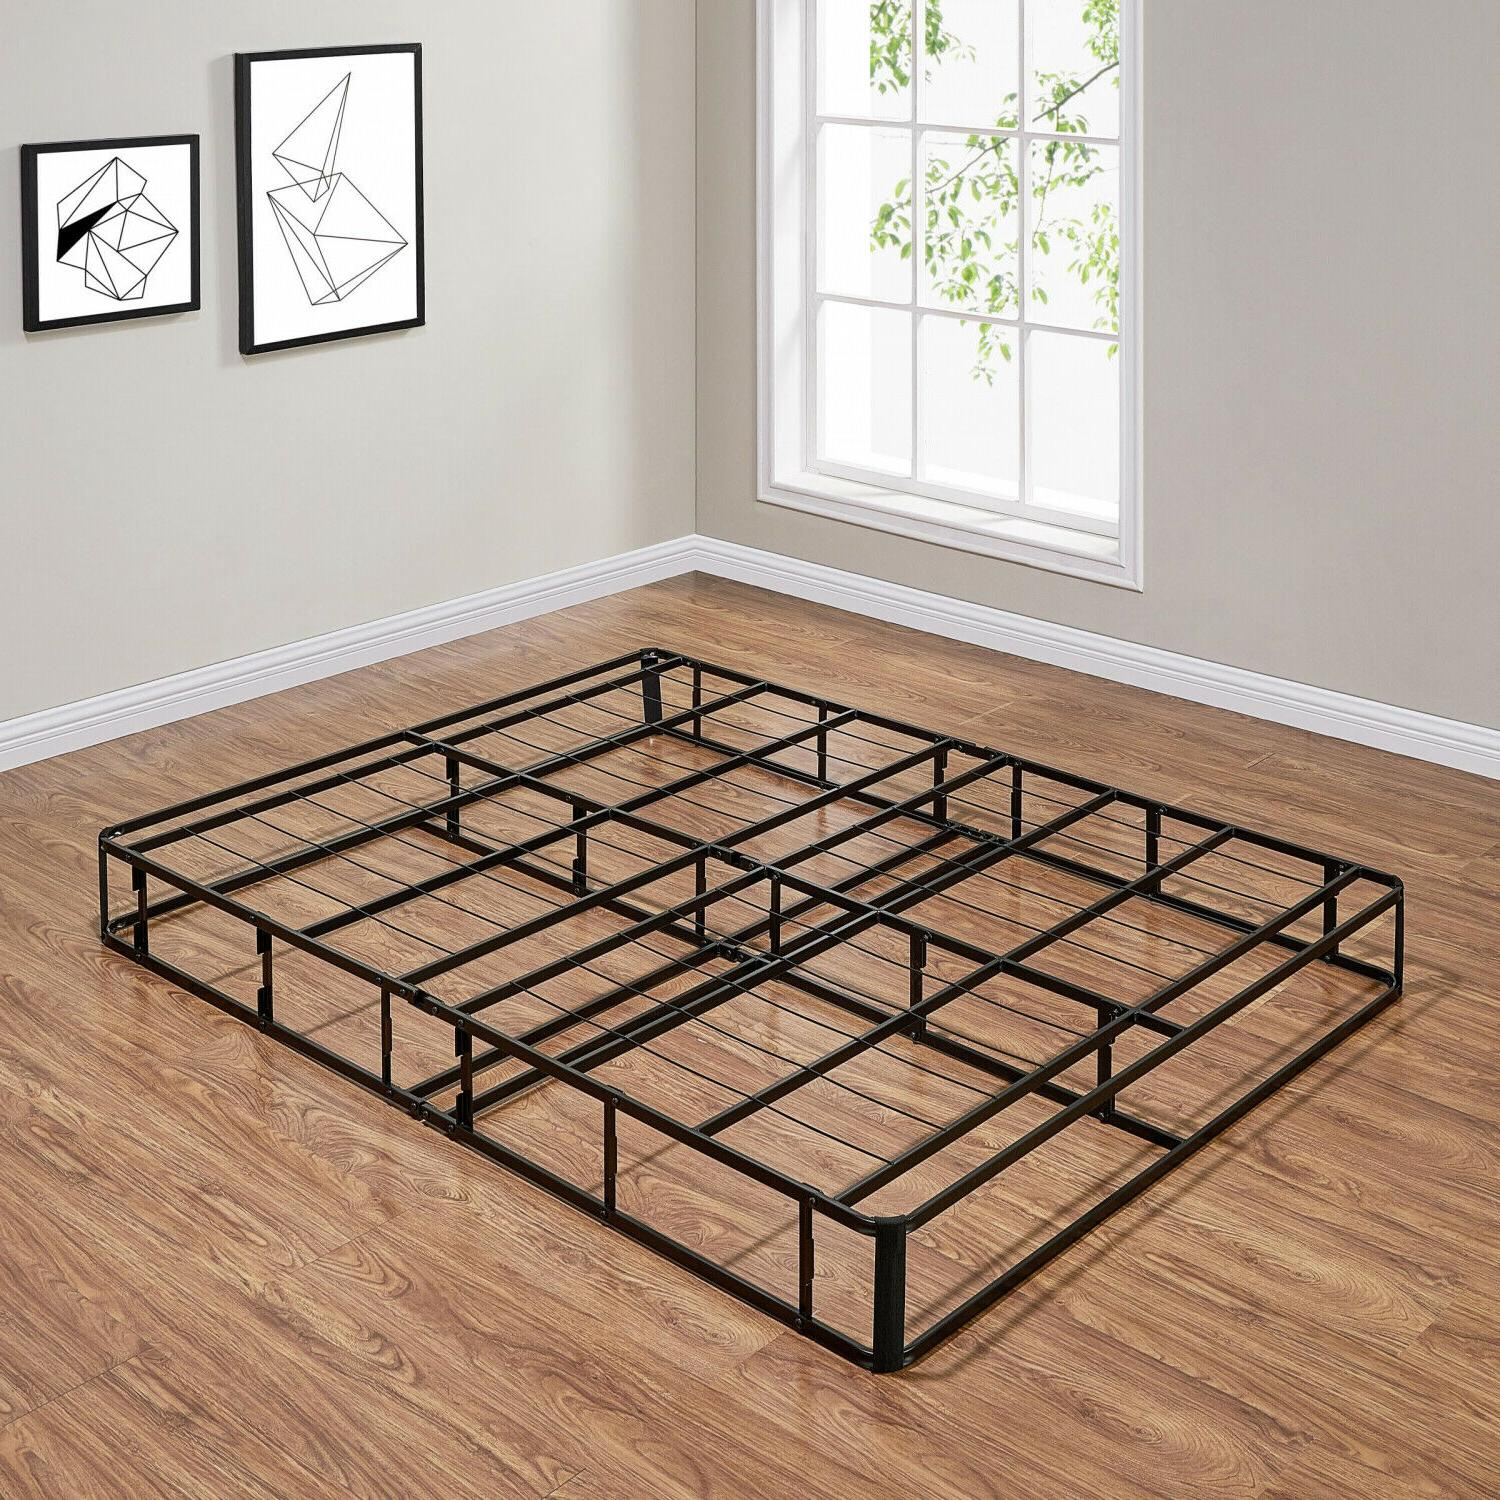 Box Spring 7.5 Metal Bed Foundation Twin Queen King Size